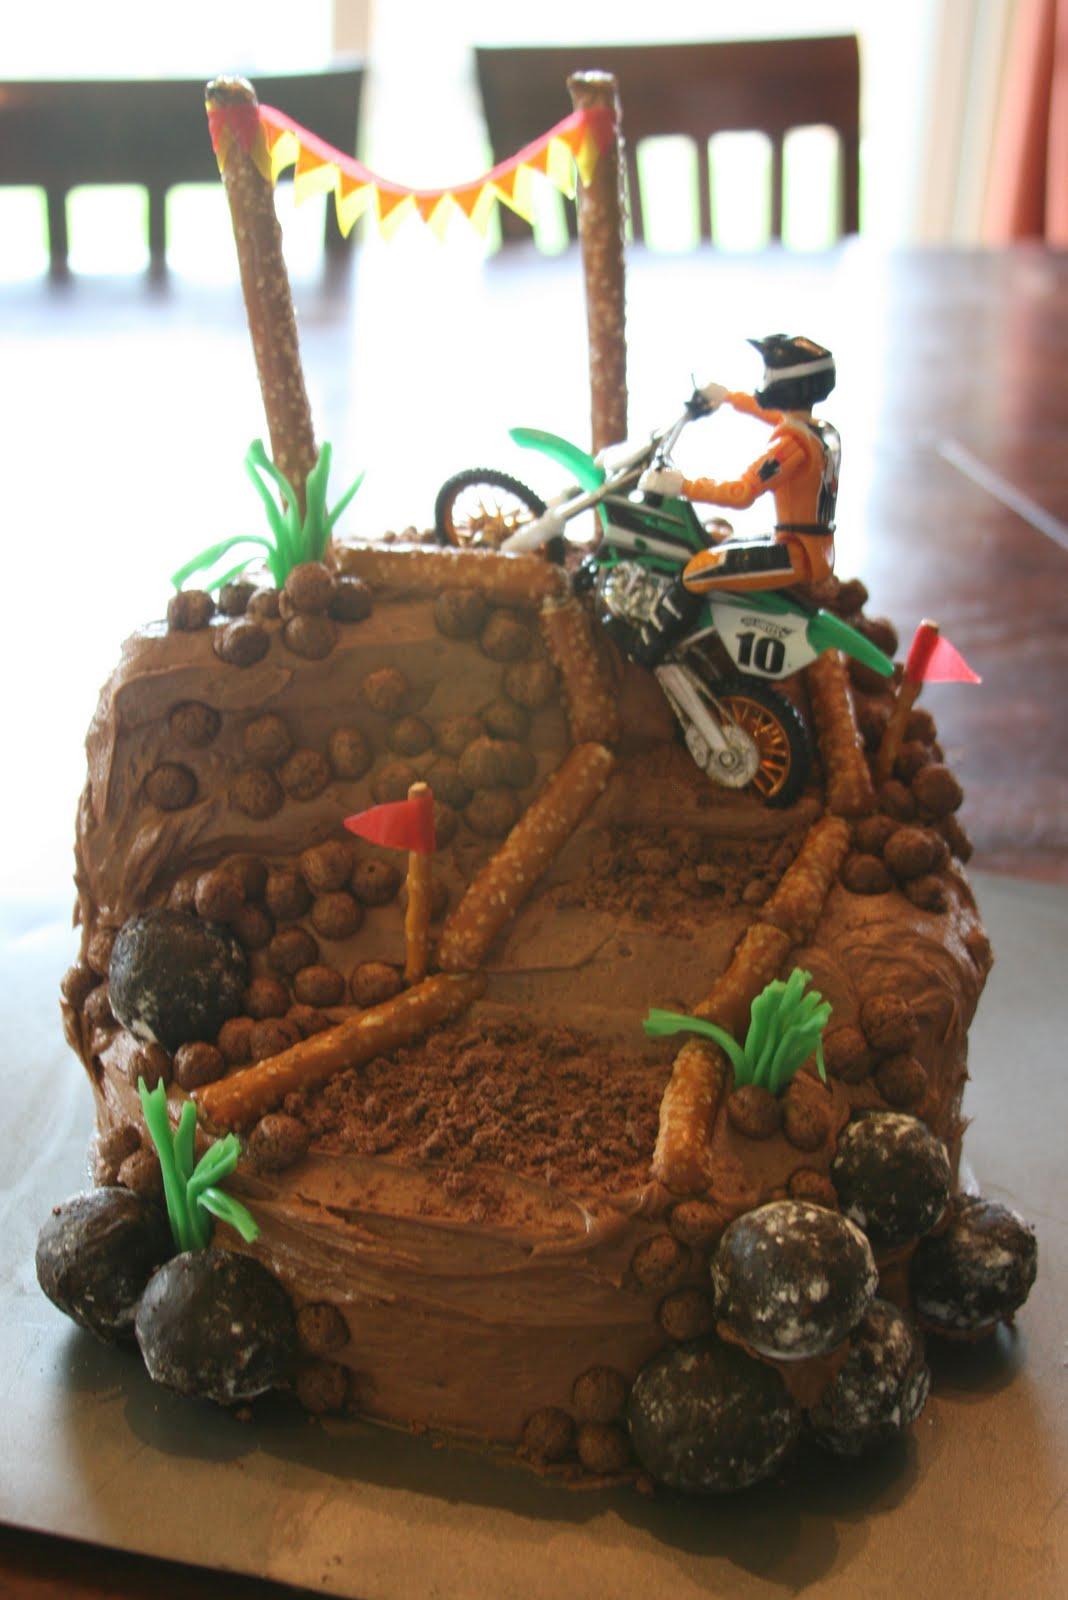 Motocross Birthday Cake That We Found In The Family Fun Magazine